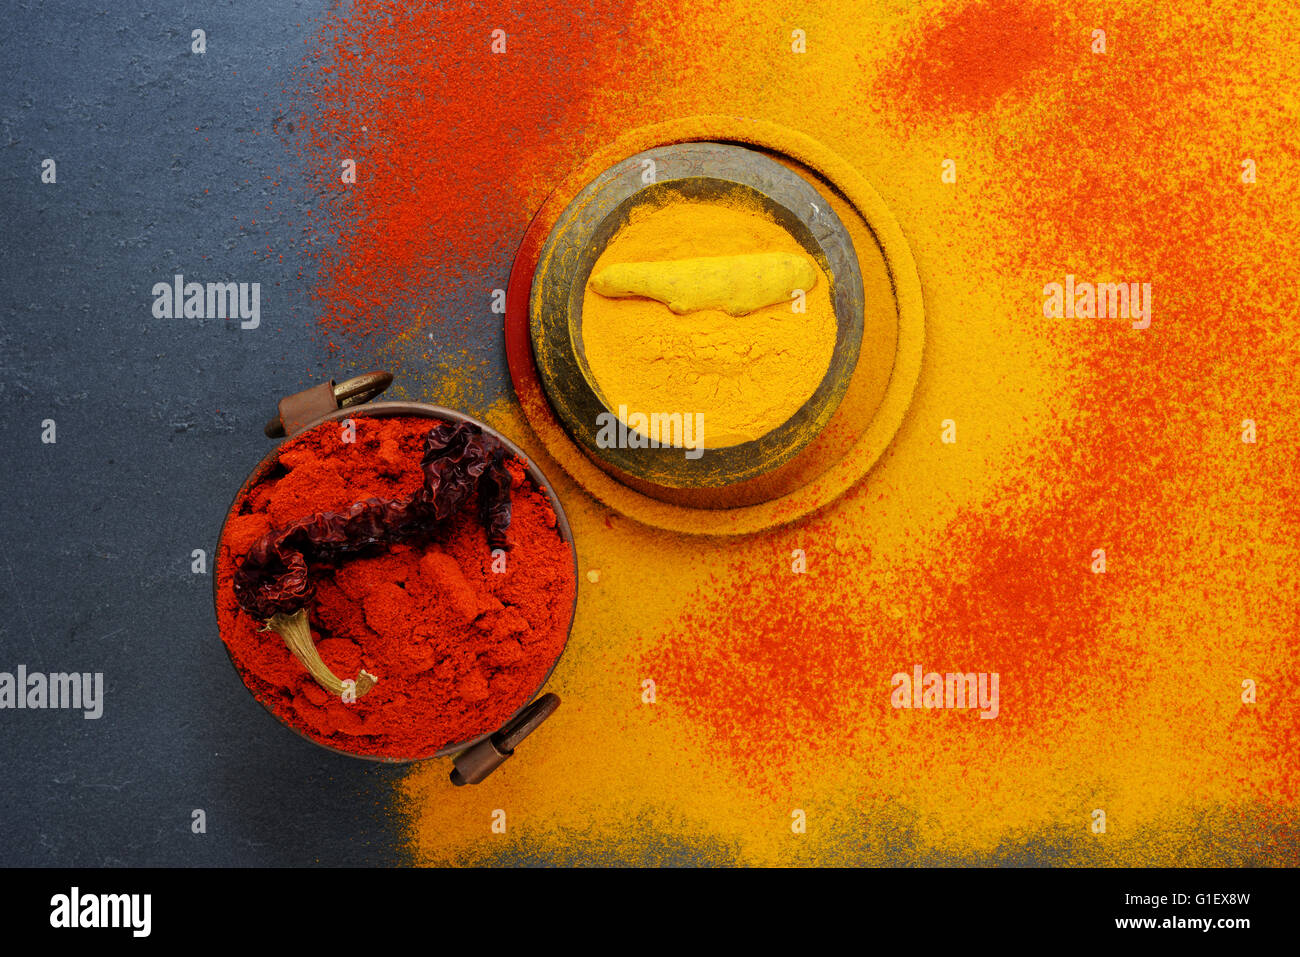 Set of spices pepper and turmeric, in vintage metal cups over yellow turmeric powder. Top view. Food or spicy cooking - Stock Image